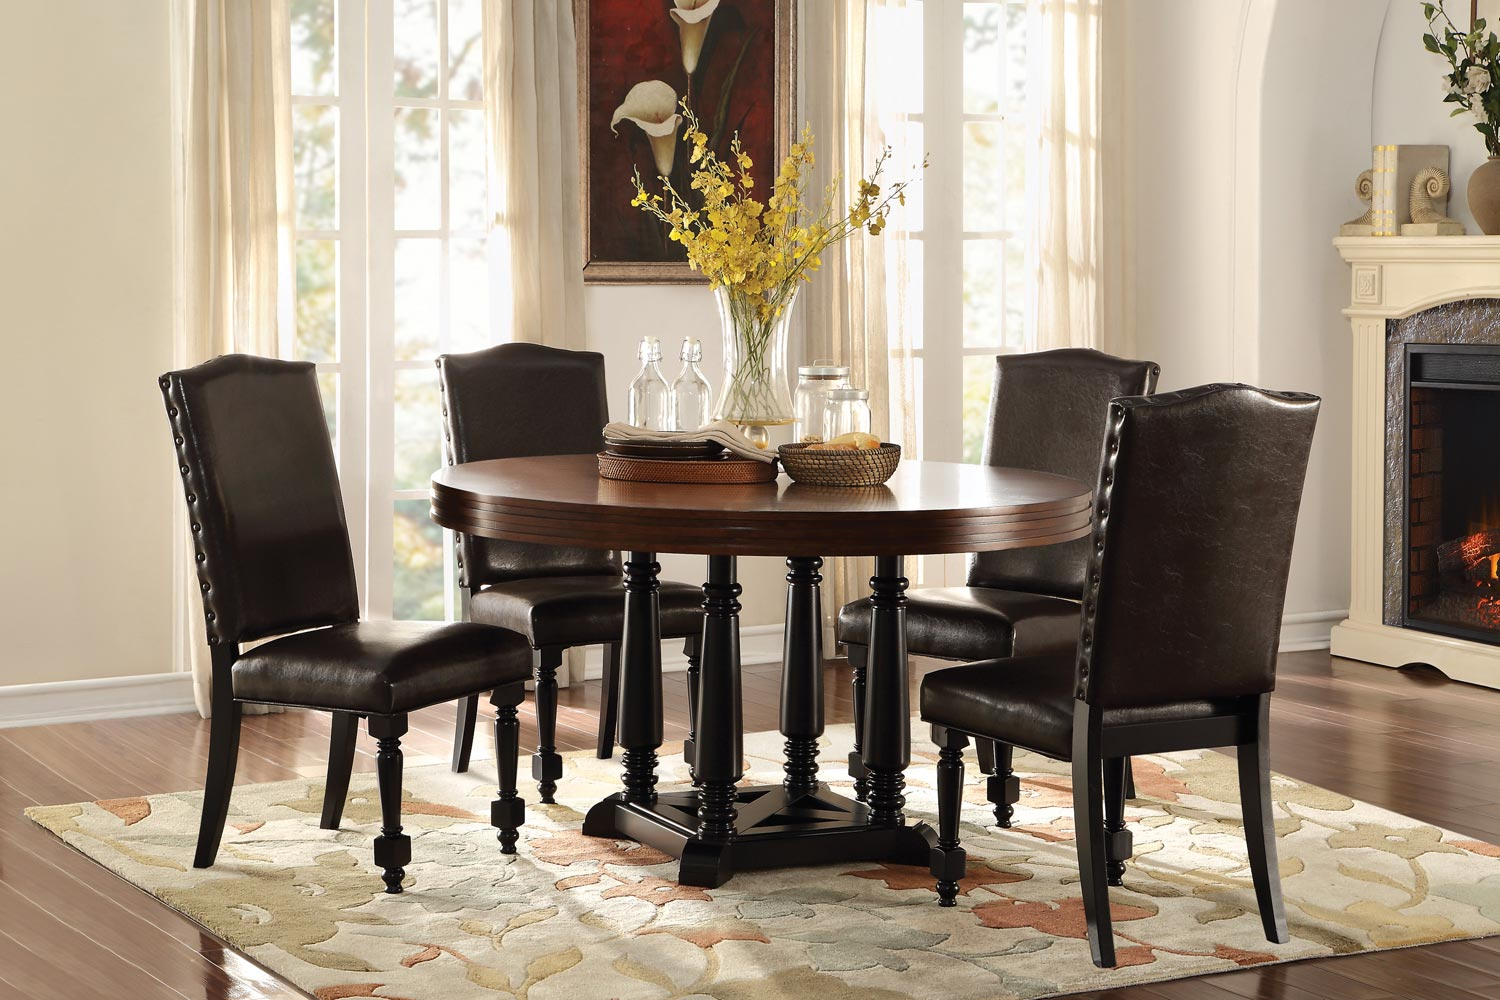 Homelegance Blossomwood Round Dining Set with Bi-Cast Chairs - Cherry/Black